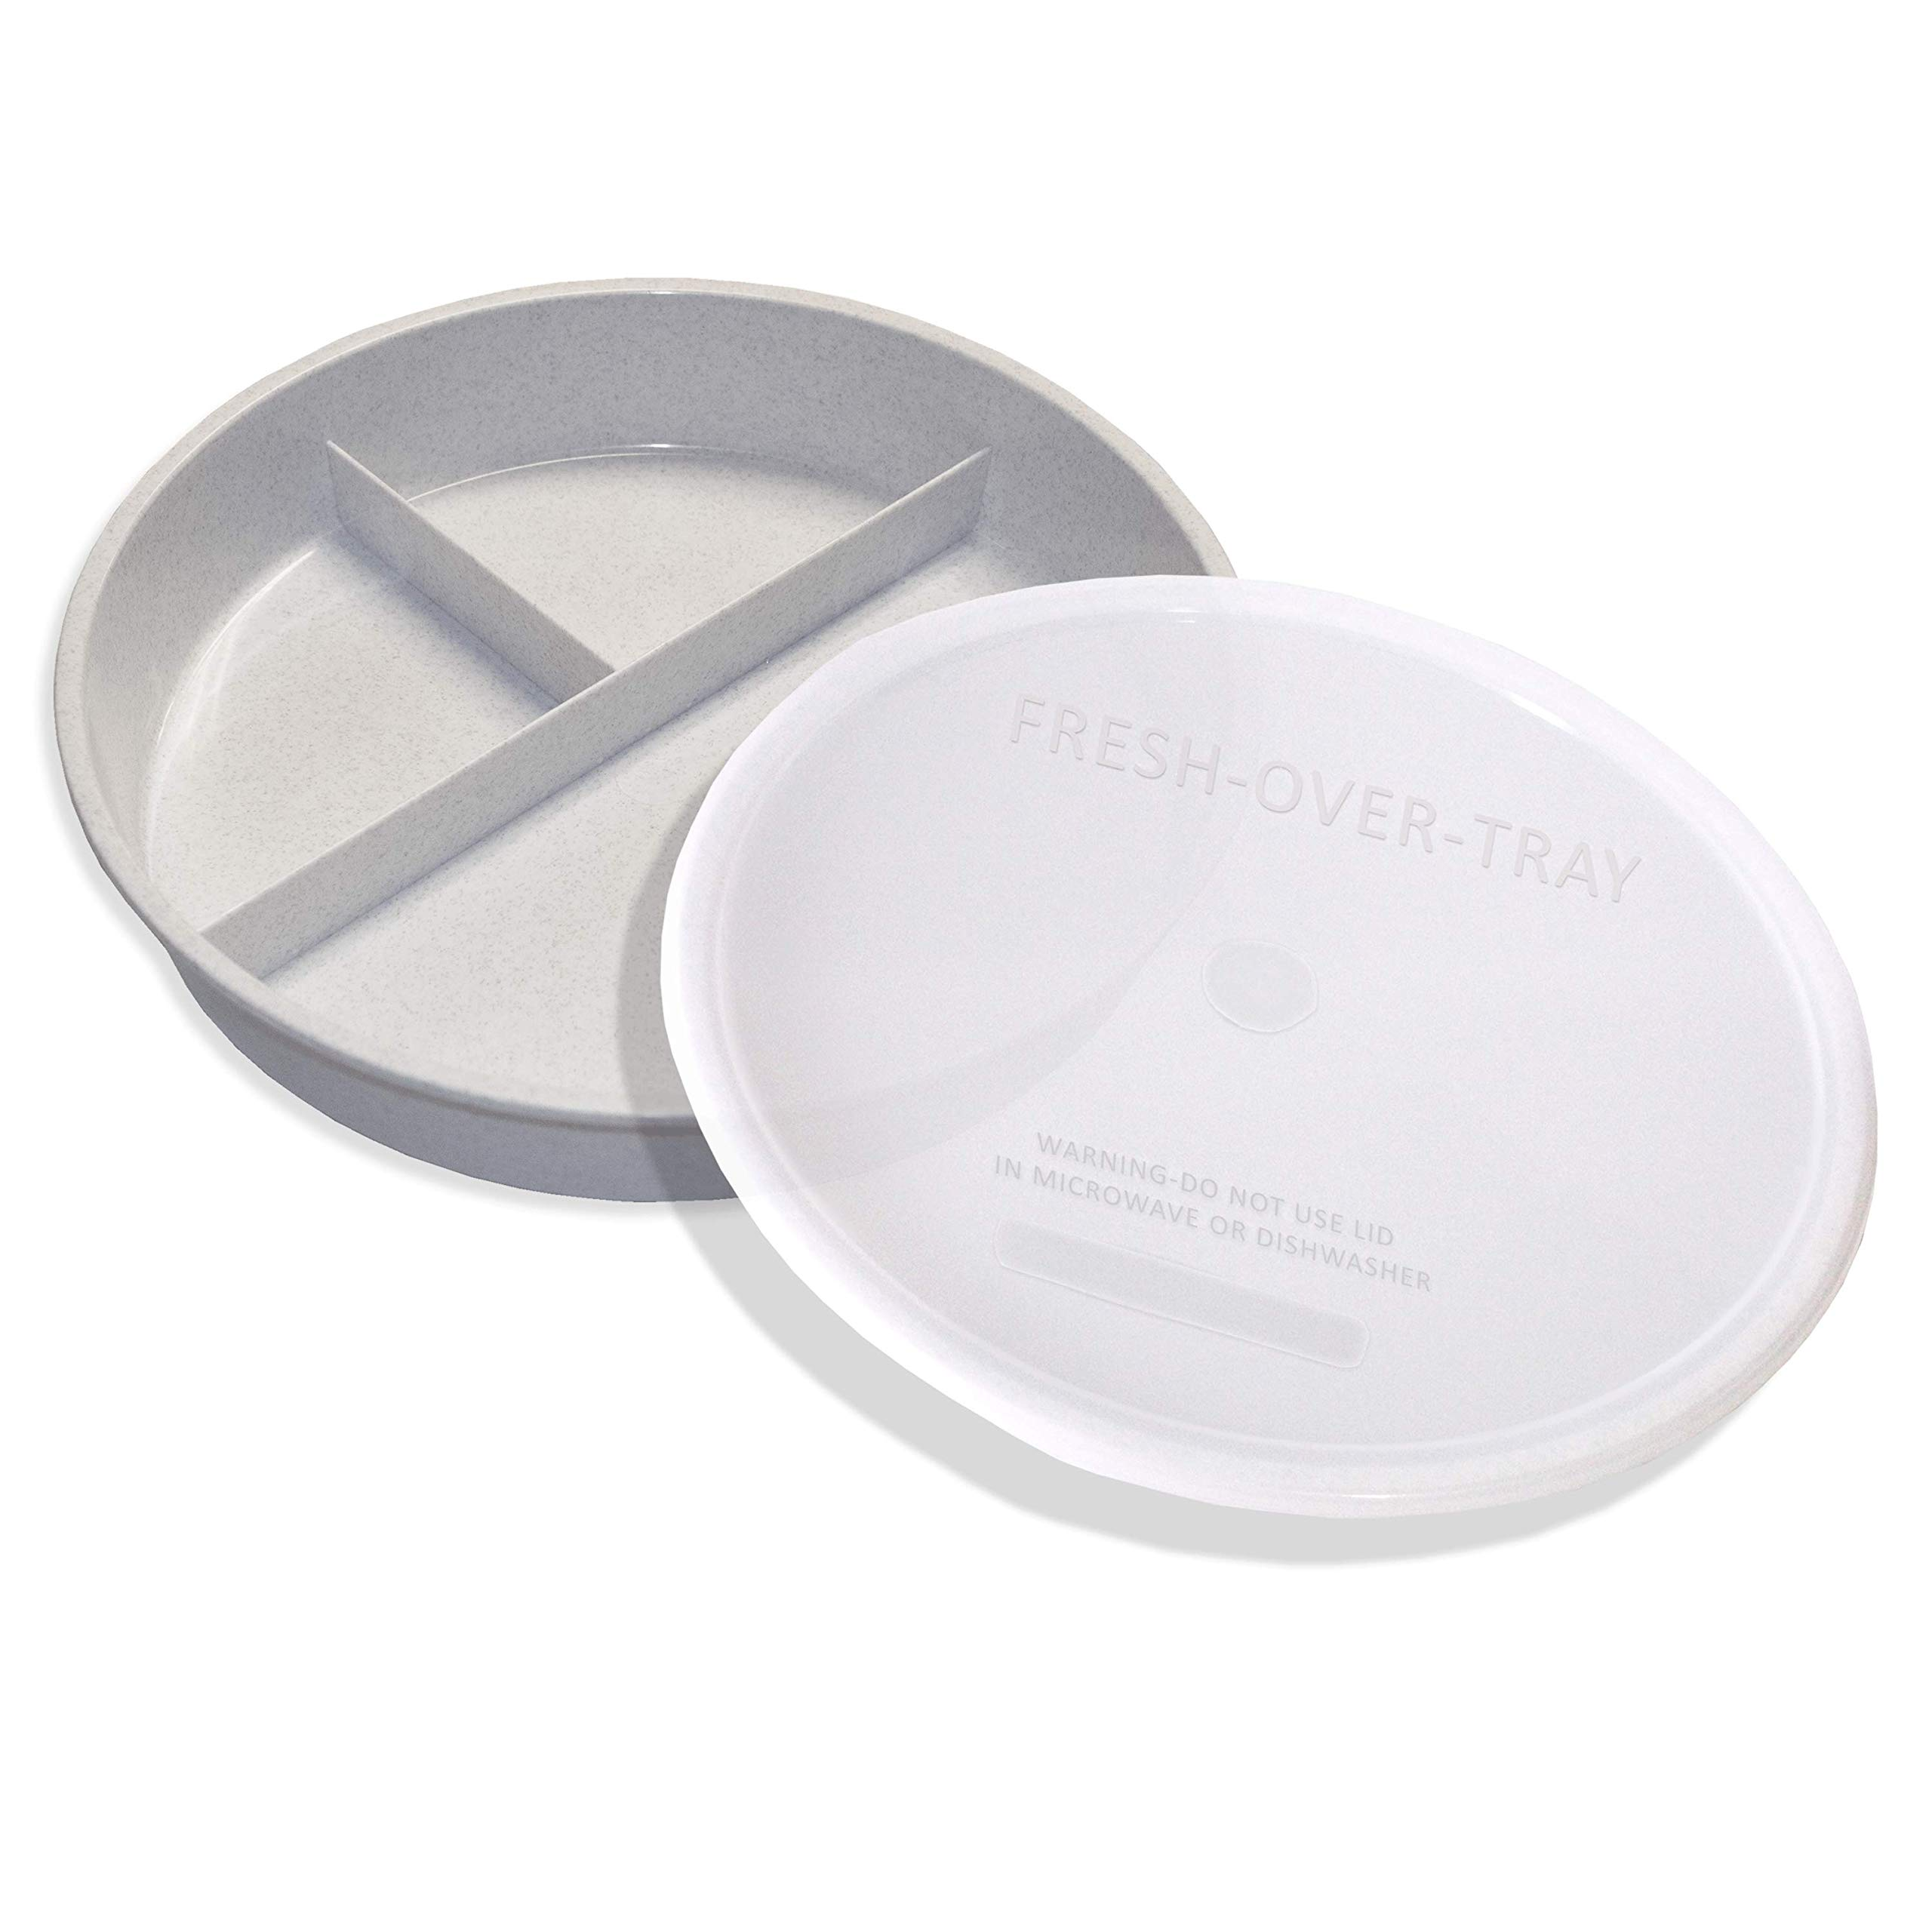 High Sided Partitioned Dish with Lid by Rehabilitation Advantage